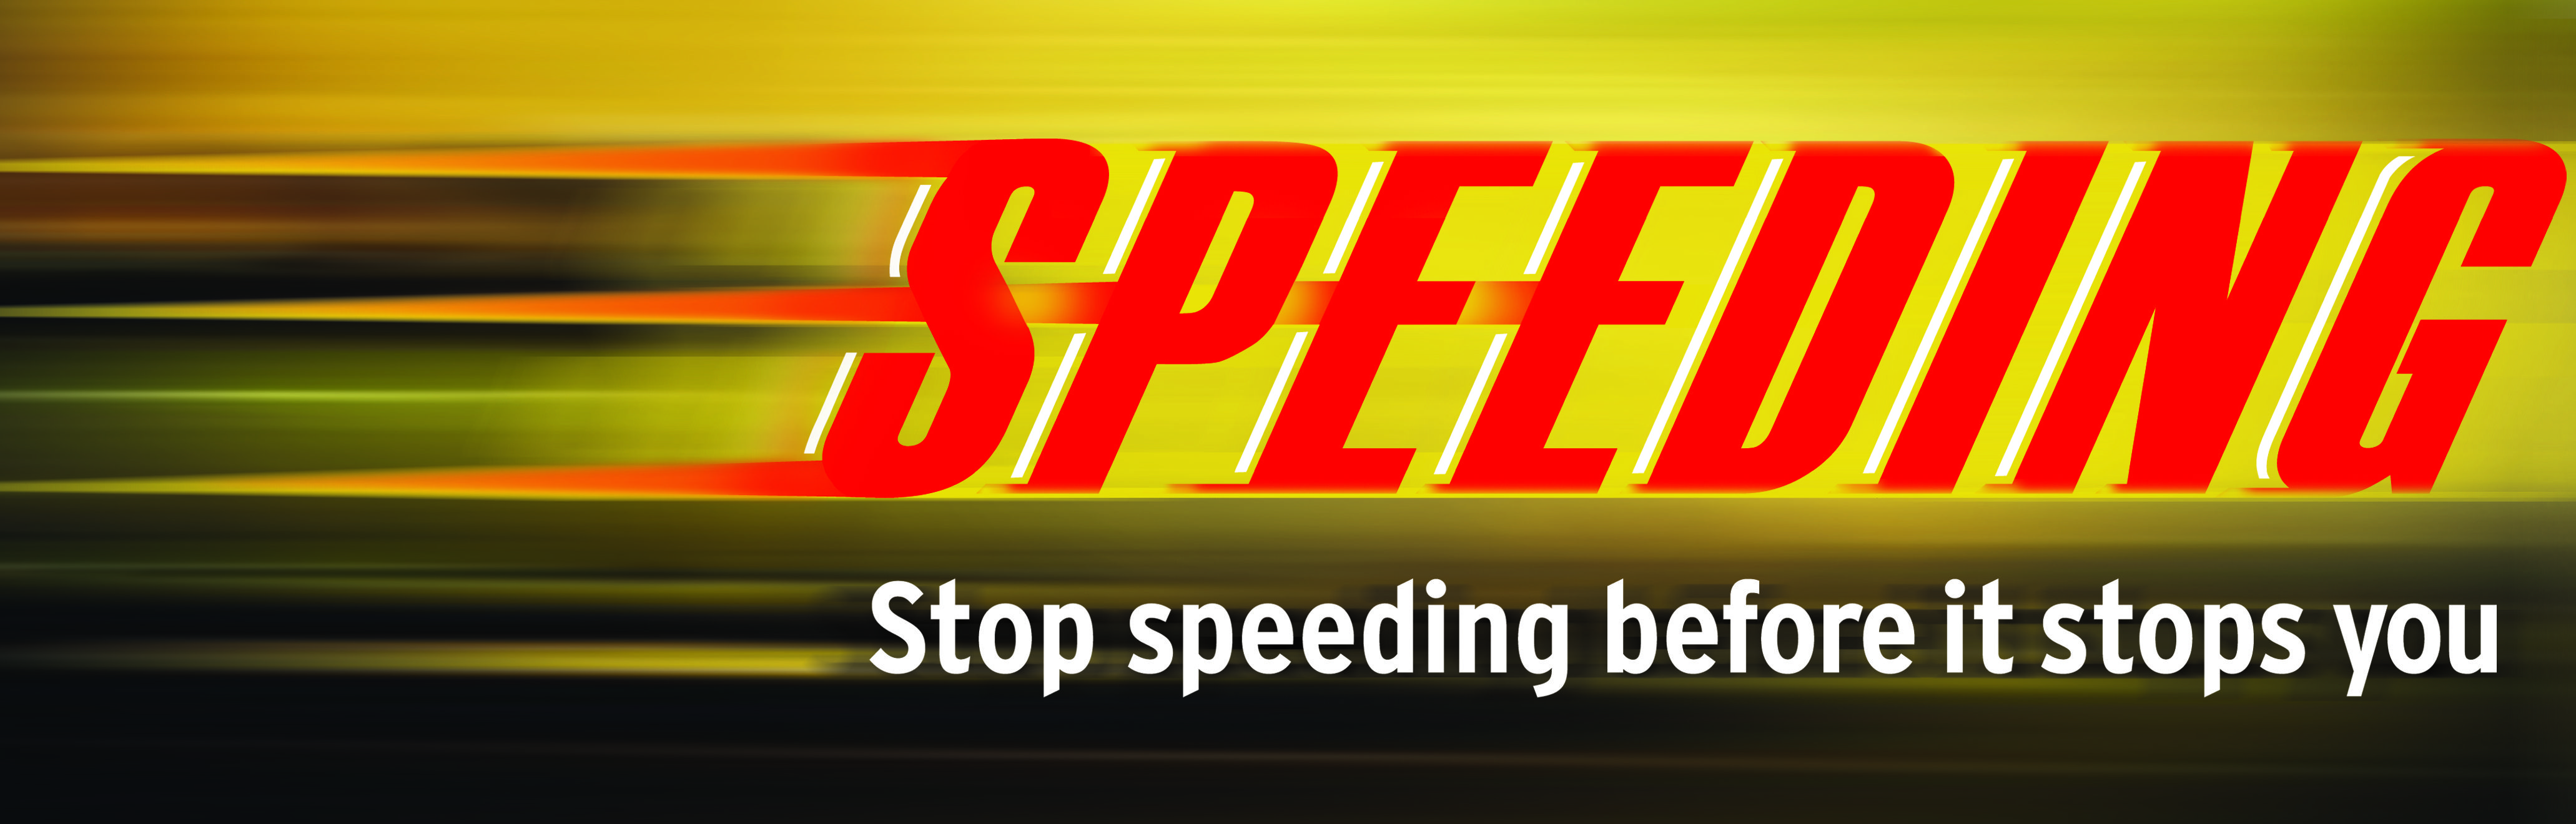 Stop speeding before it stops you. Speed Prevention